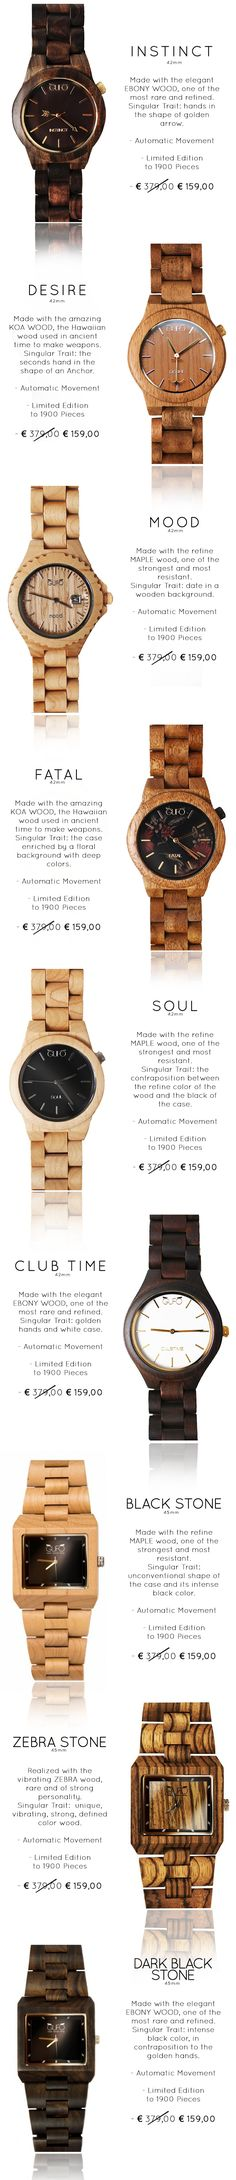 Join the Luxury Revolution: Amazing Handmade in Italy Timepieces made by Wood with Automatic Movement. Limited Edition to 1900 pieces.